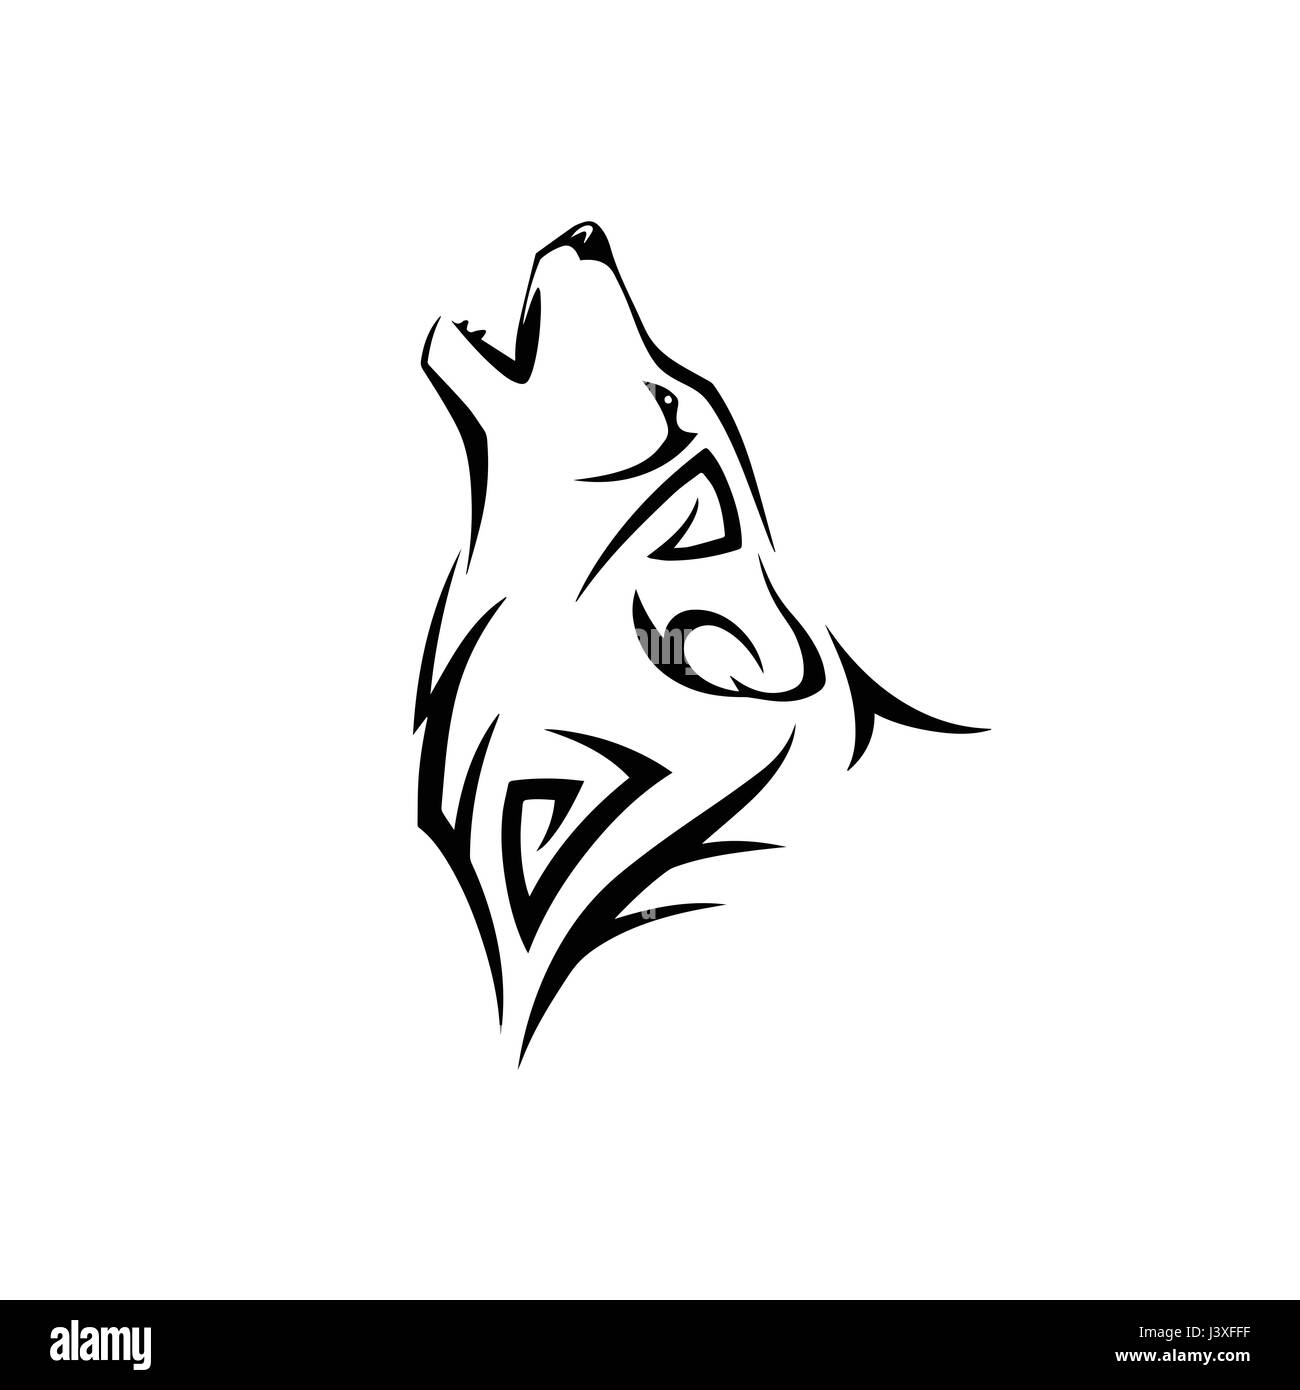 howling wolf tattoo design stock vector art amp illustration